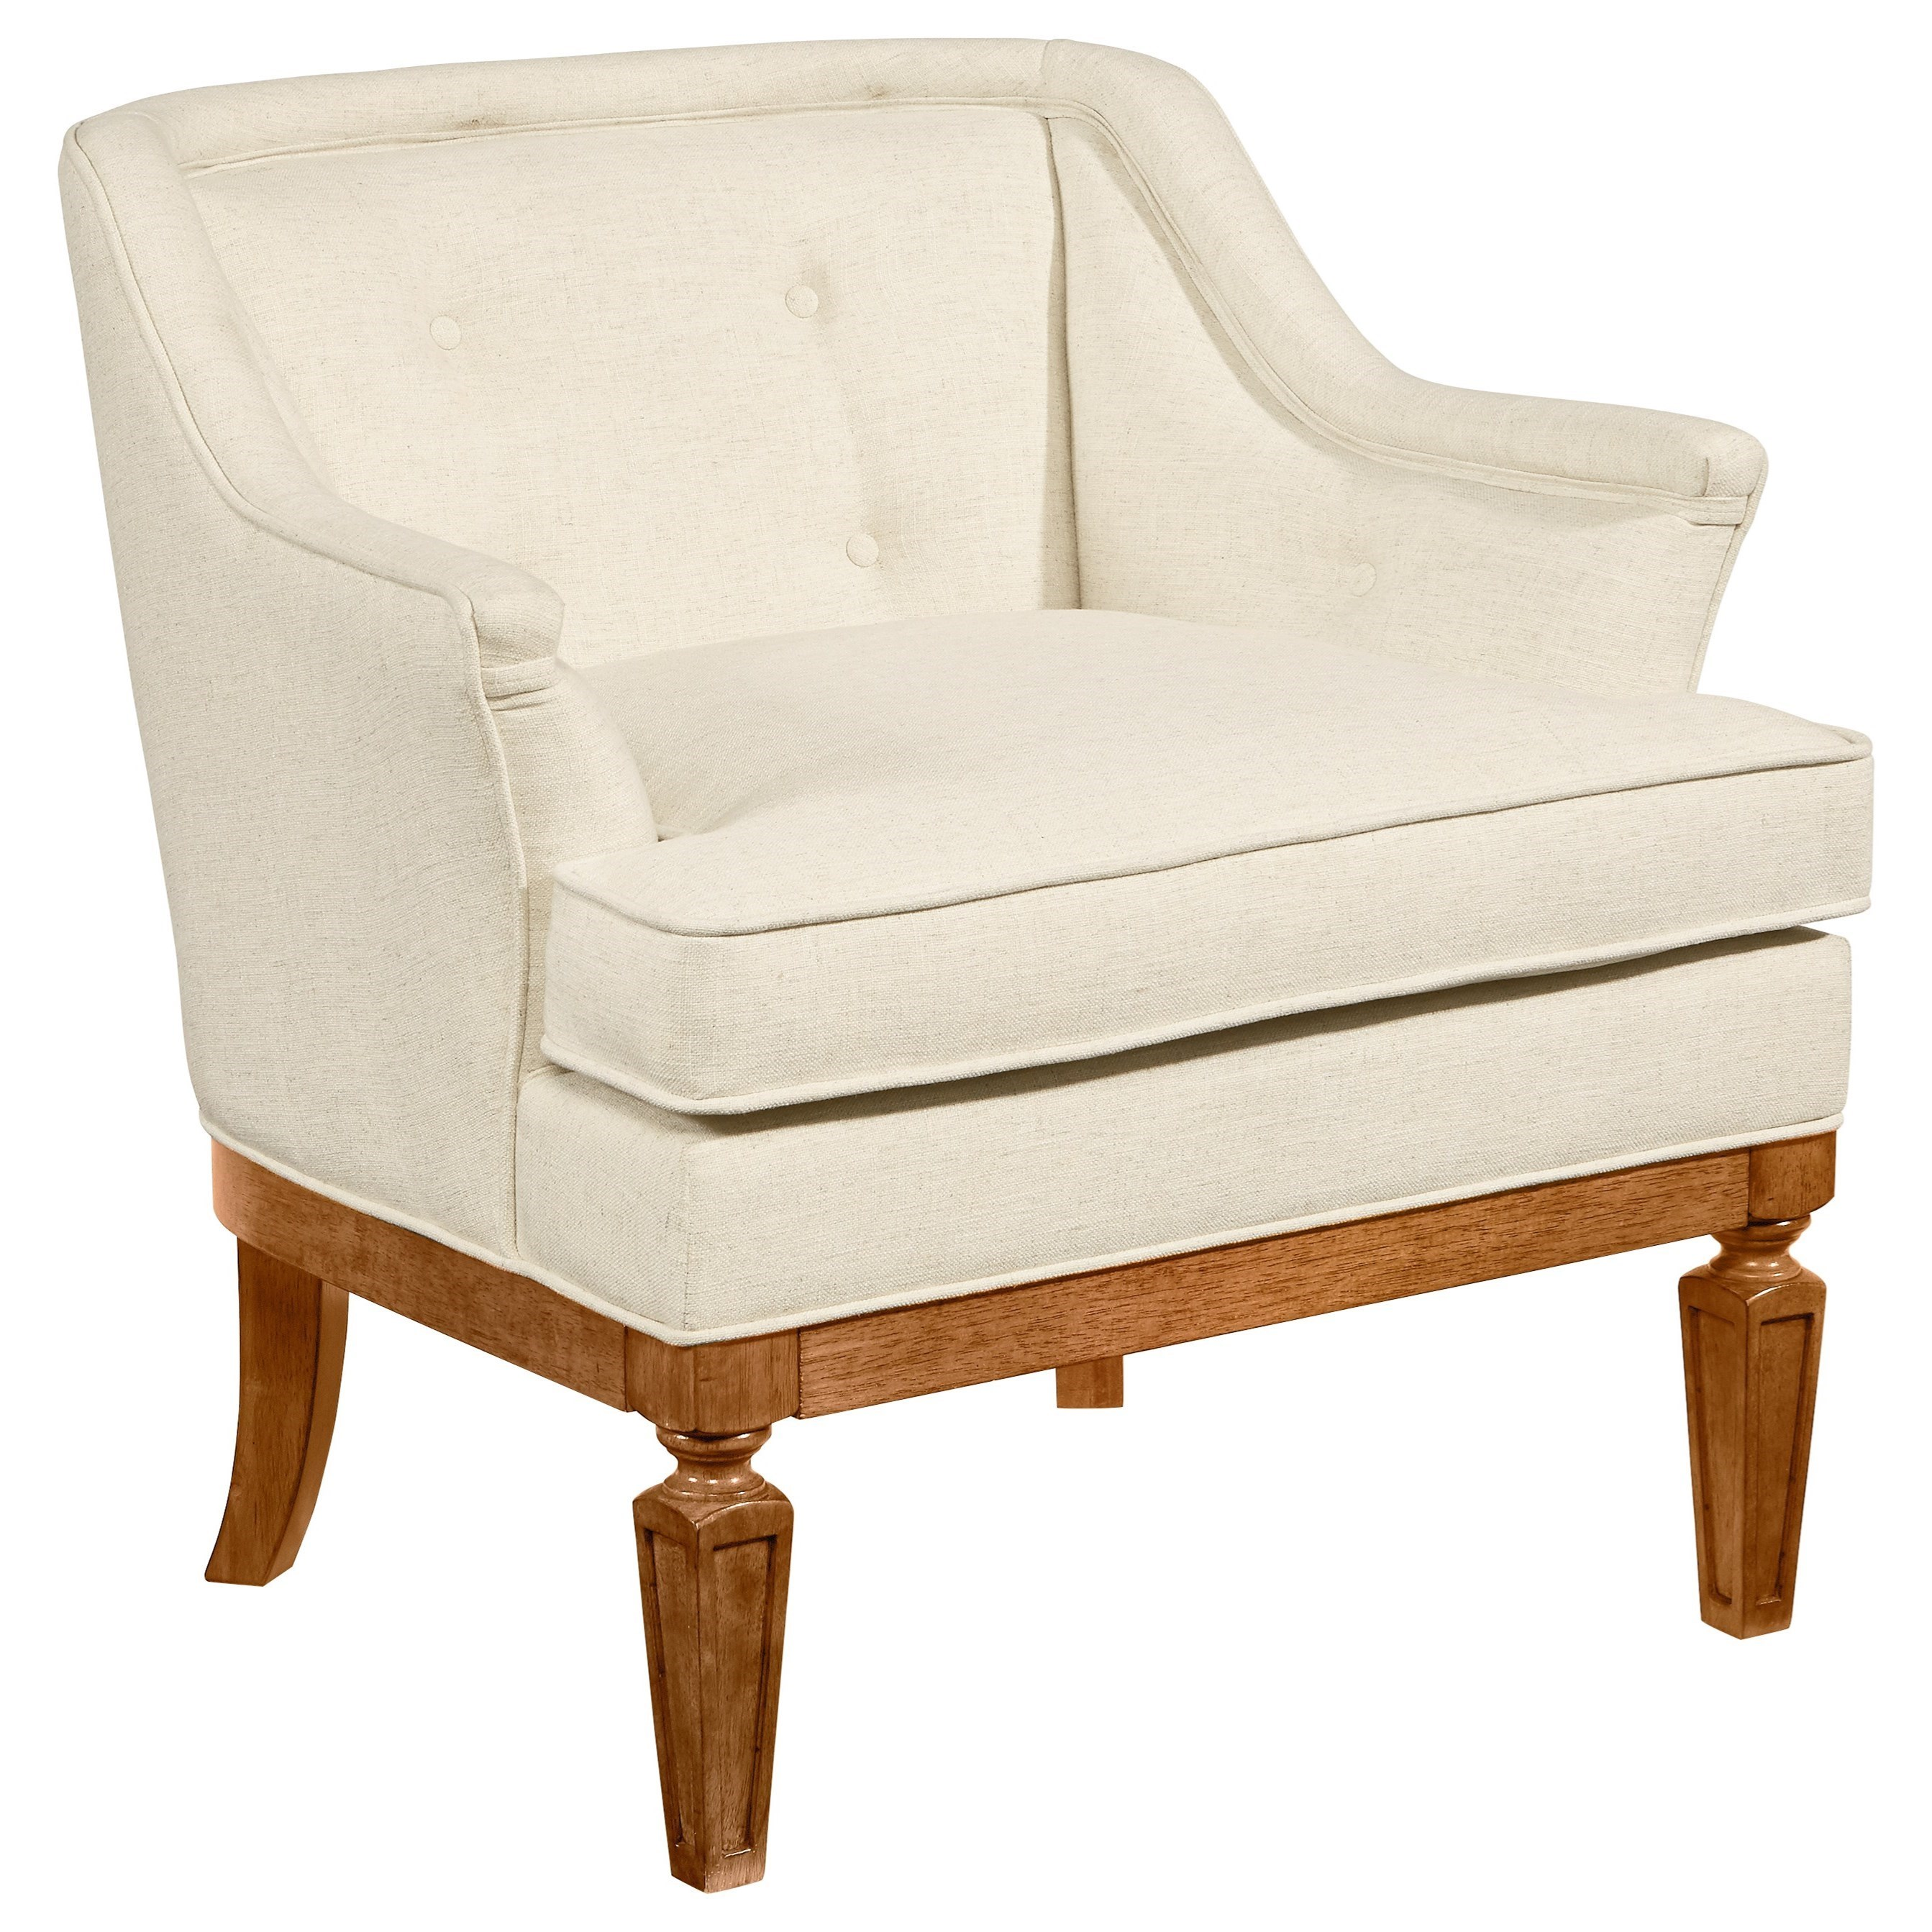 Magnolia Home By Joanna Gaines Accent ChairsUpholstered Chair ...